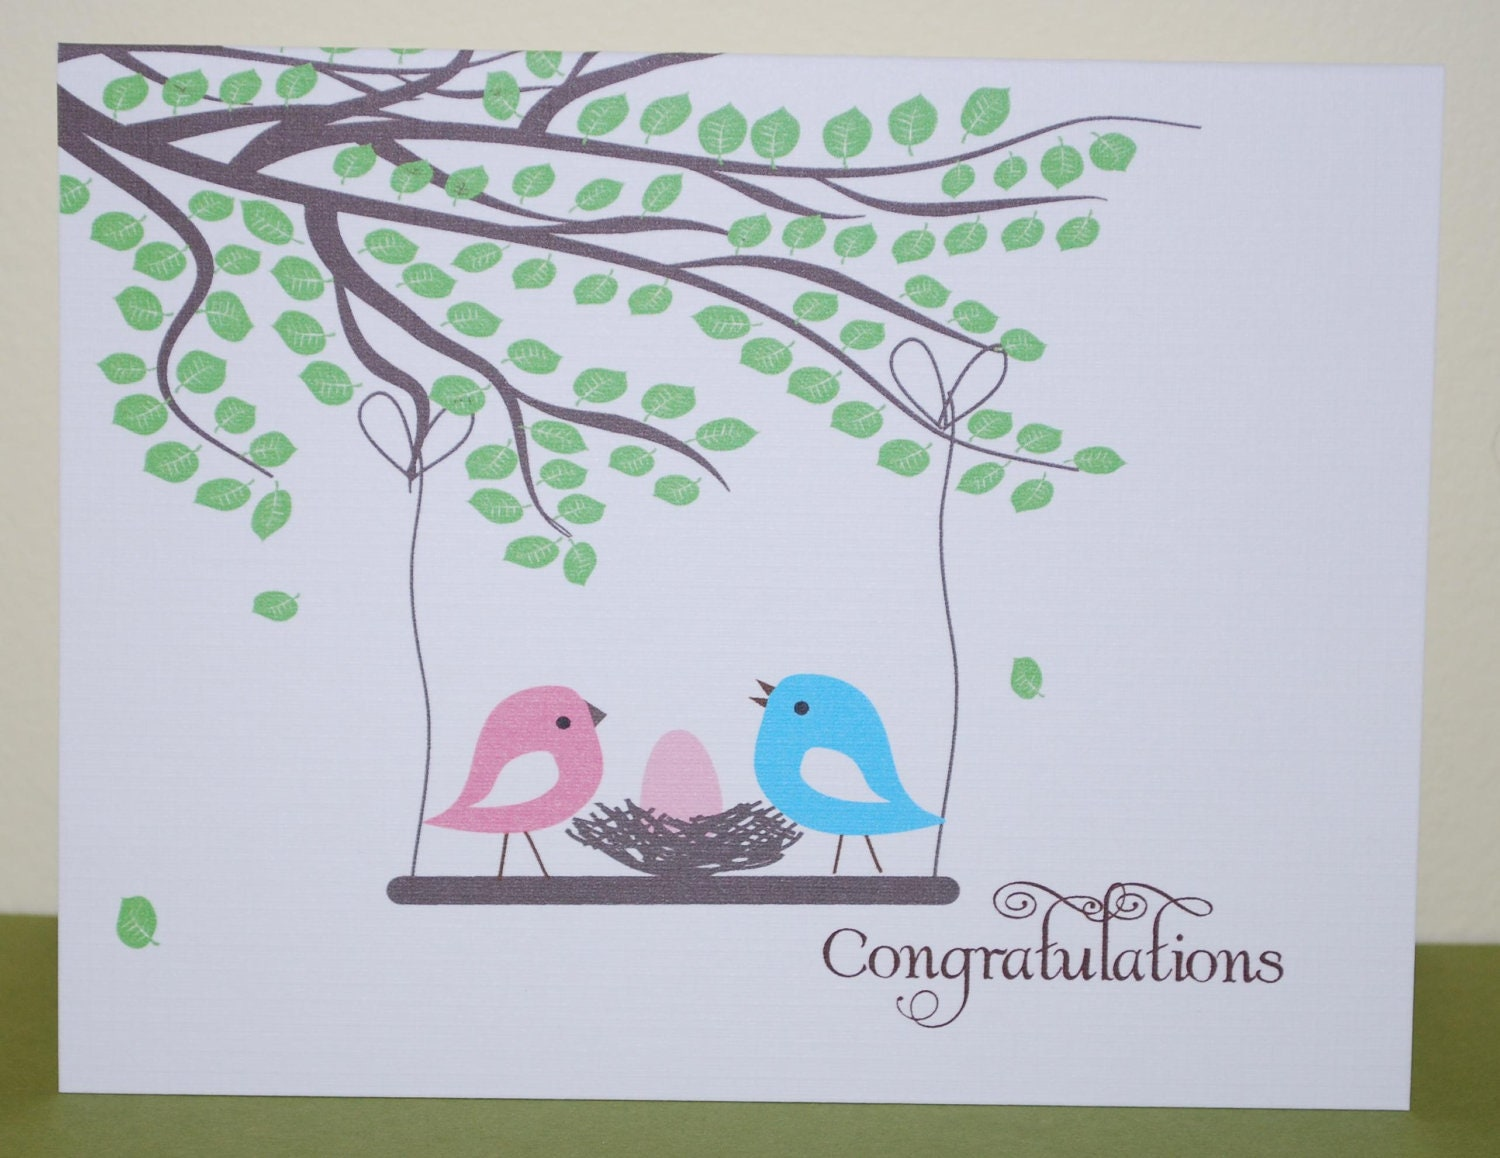 Congratulations On New Baby Card Boatremyeaton